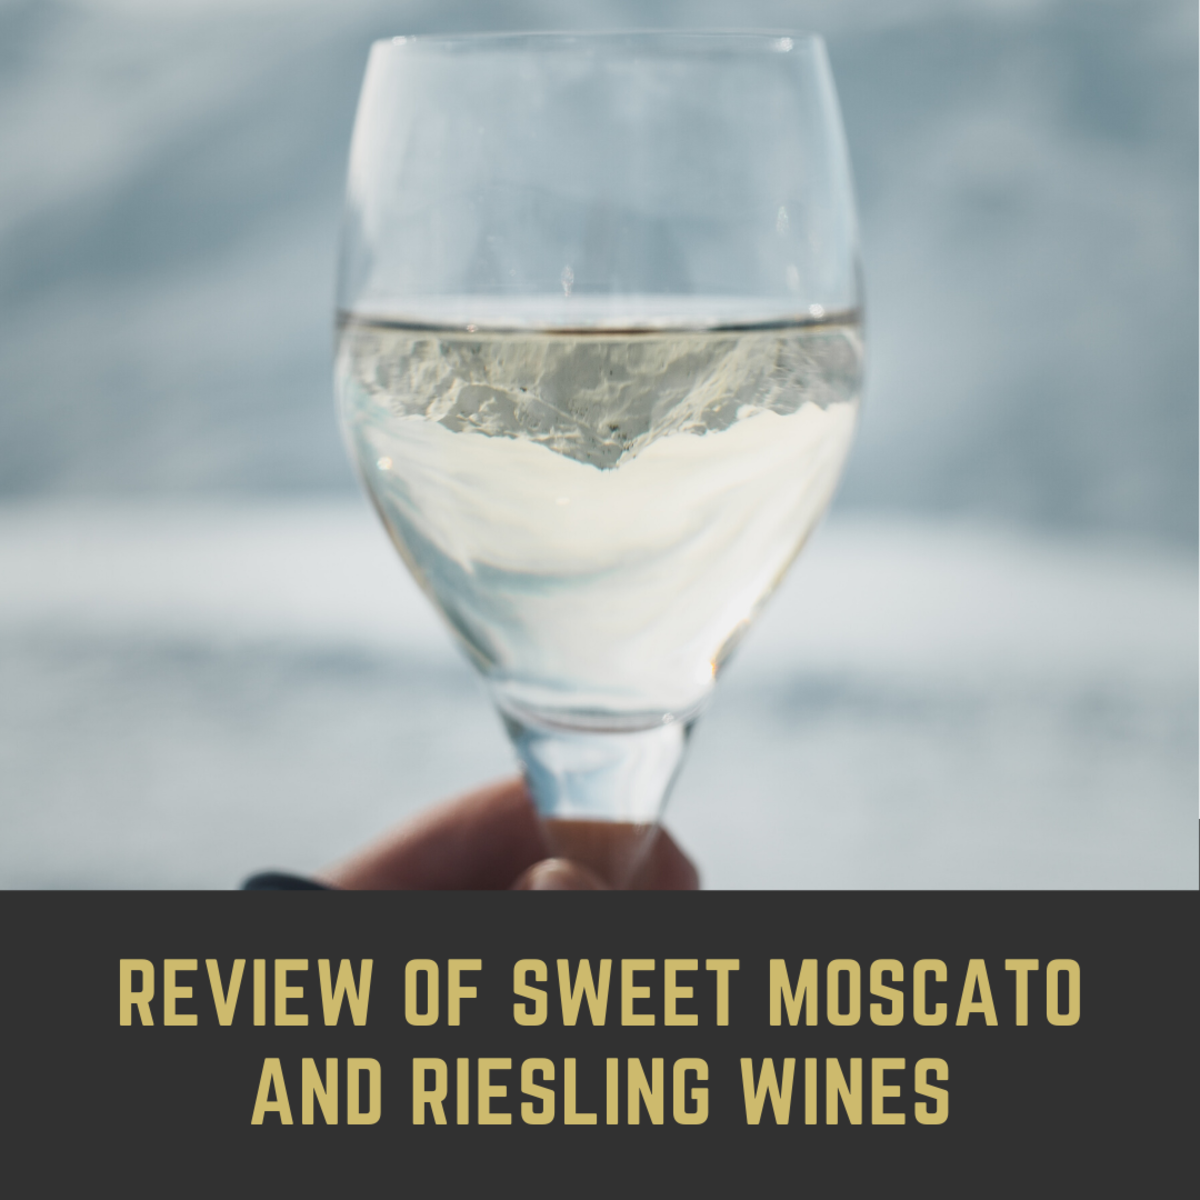 Sweet wines are the entry point to the wine world. Read on and find out which are right for you.